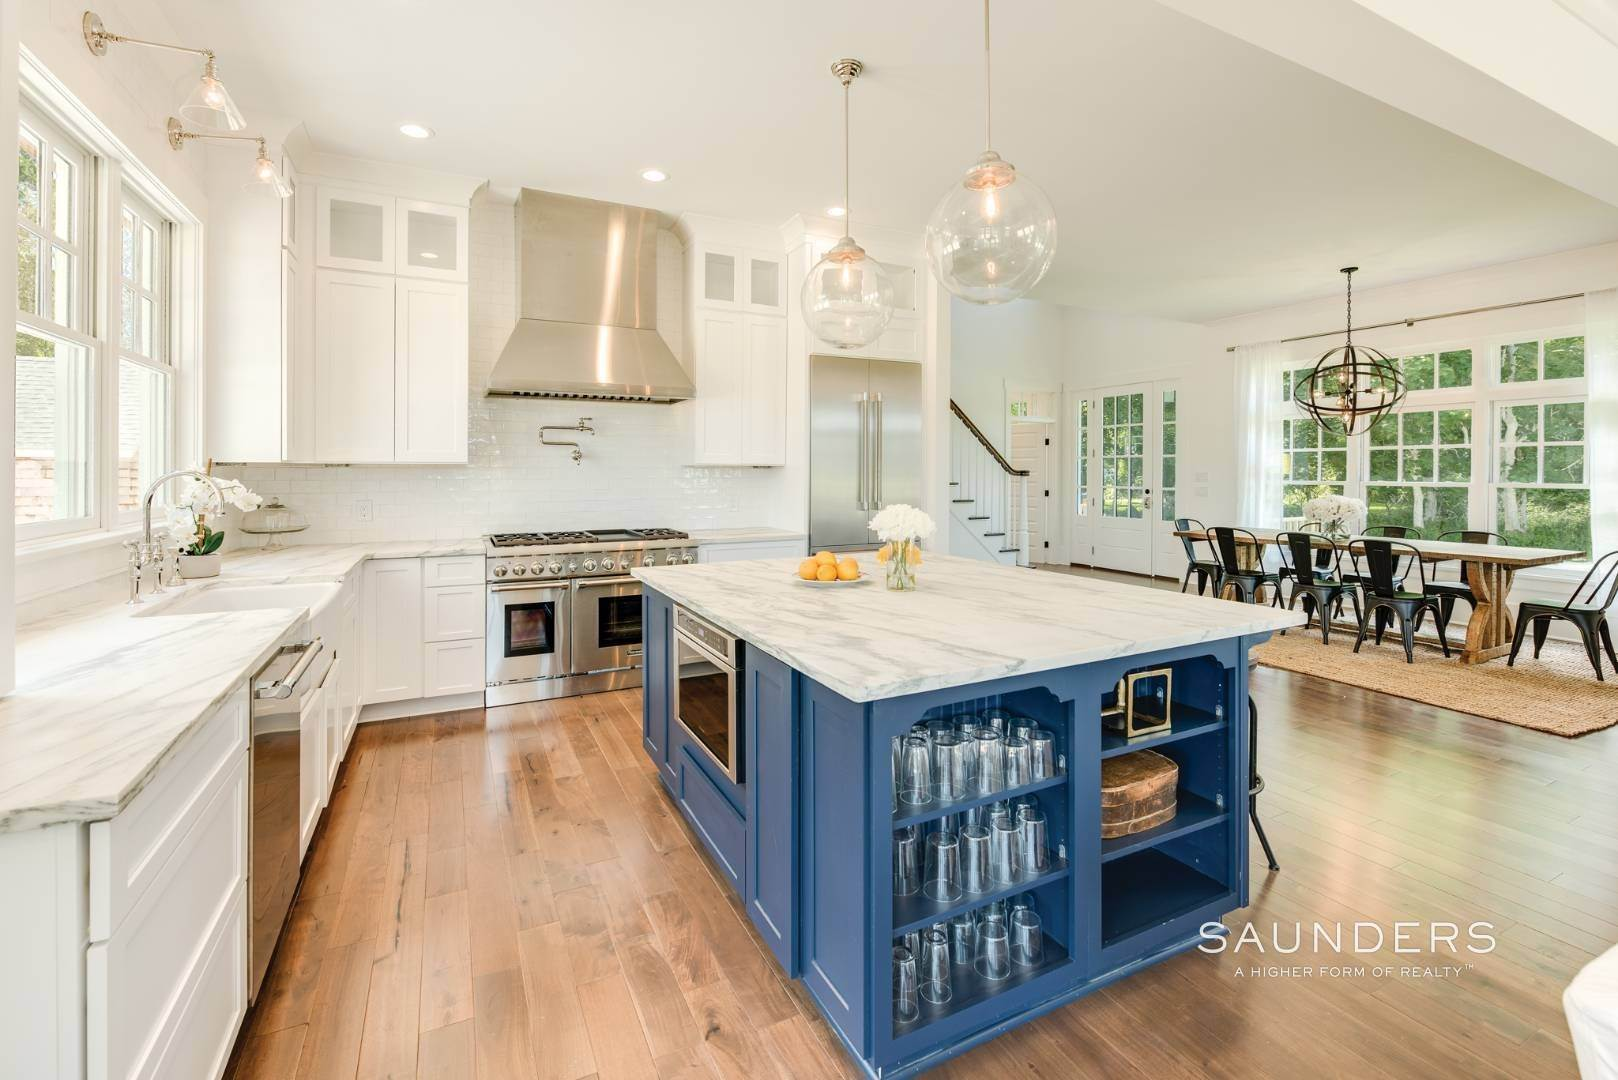 6. Single Family Homes for Sale at Unique In Amagansett - New Construction With A Separate Cottage! 8 Cozzens Lane, Amagansett, East Hampton Town, NY 11930